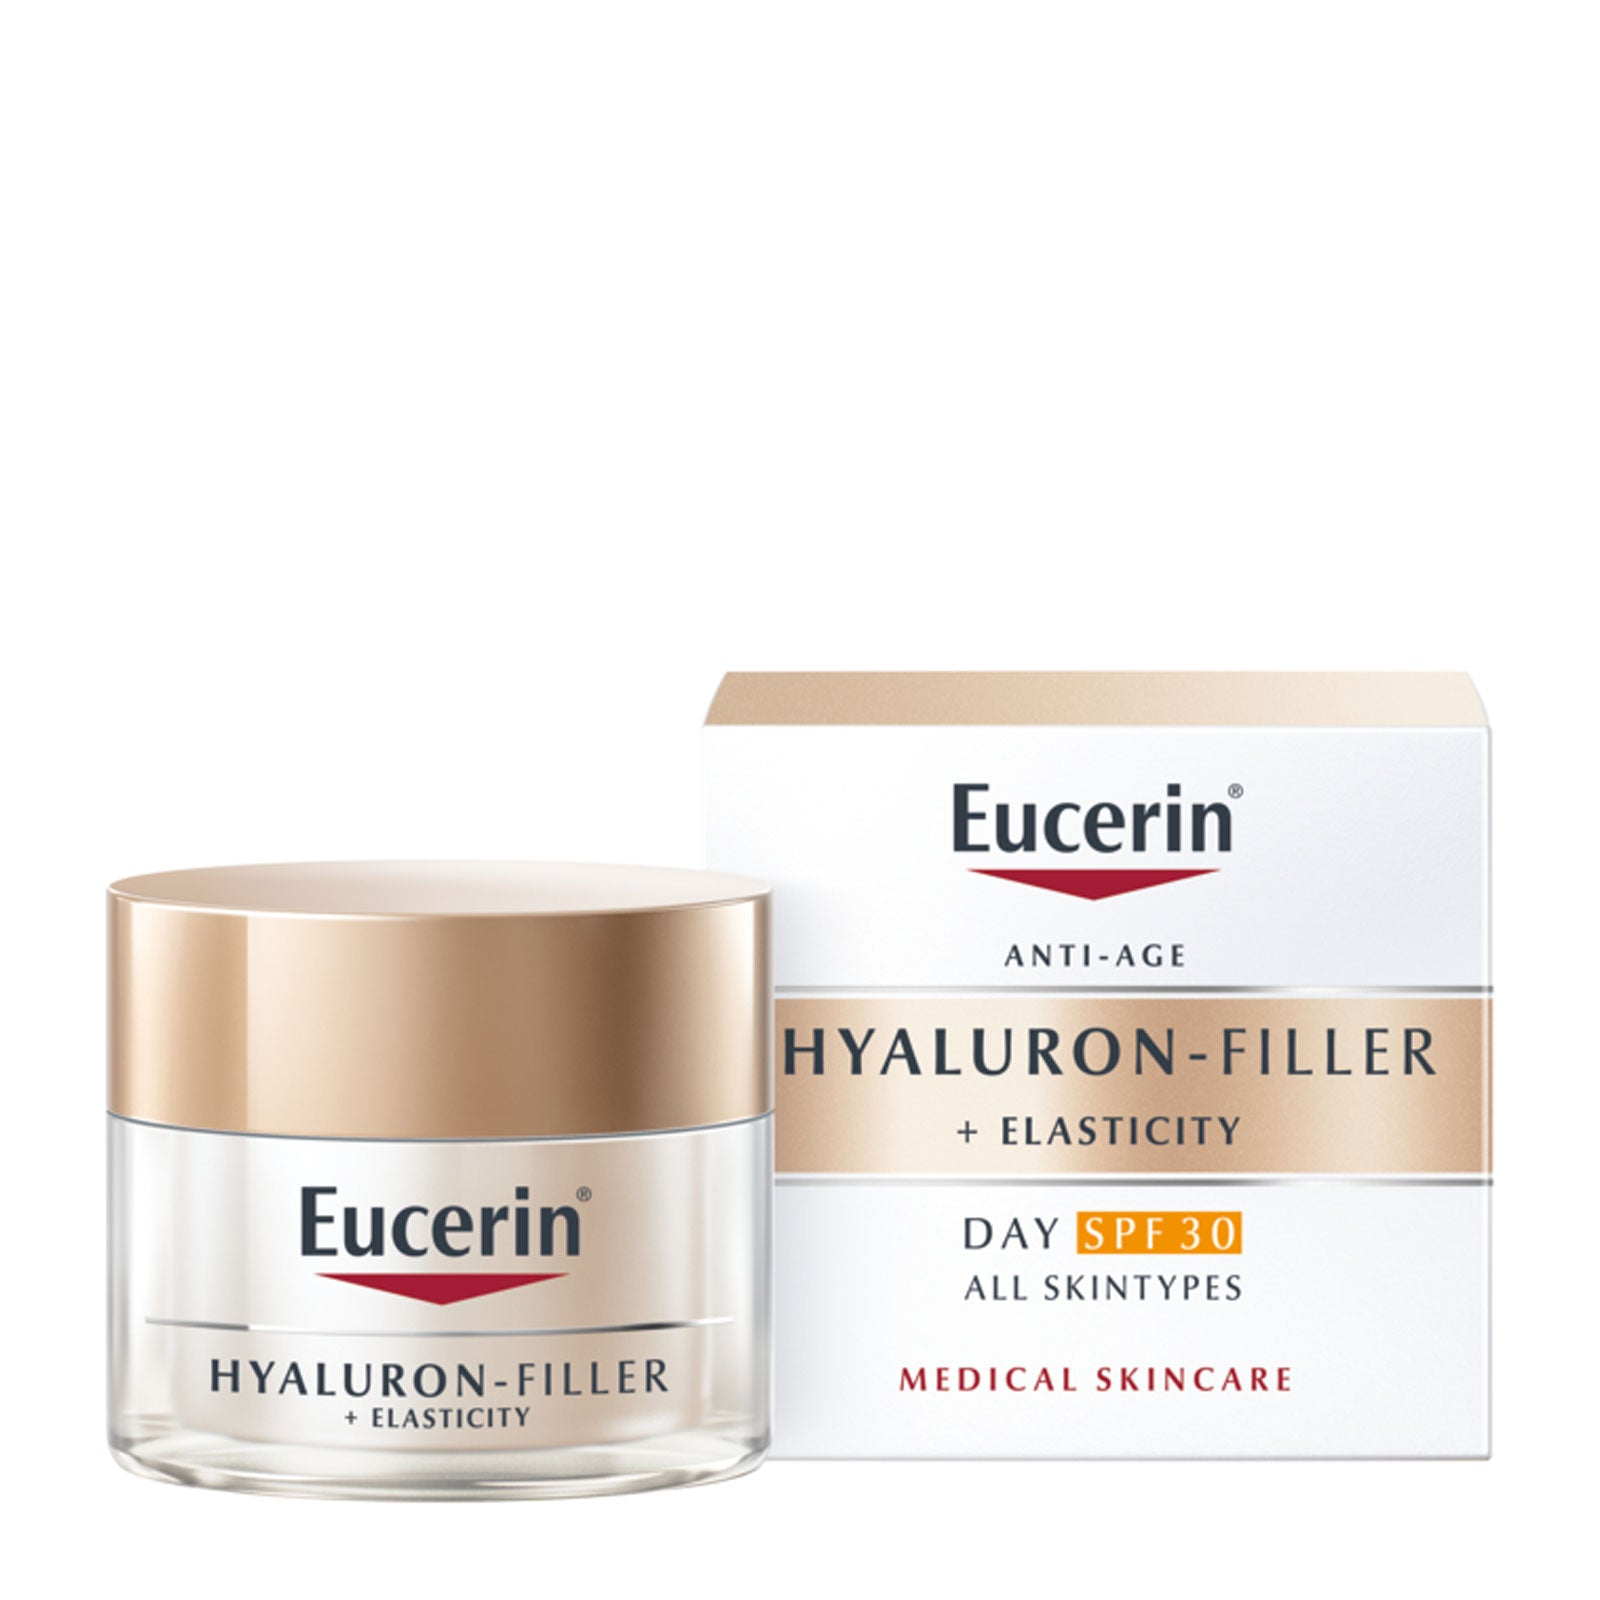 Eucerin Hyaluron-Filler + Elasticity Anti-Aging Day Cream SPF30 50ml